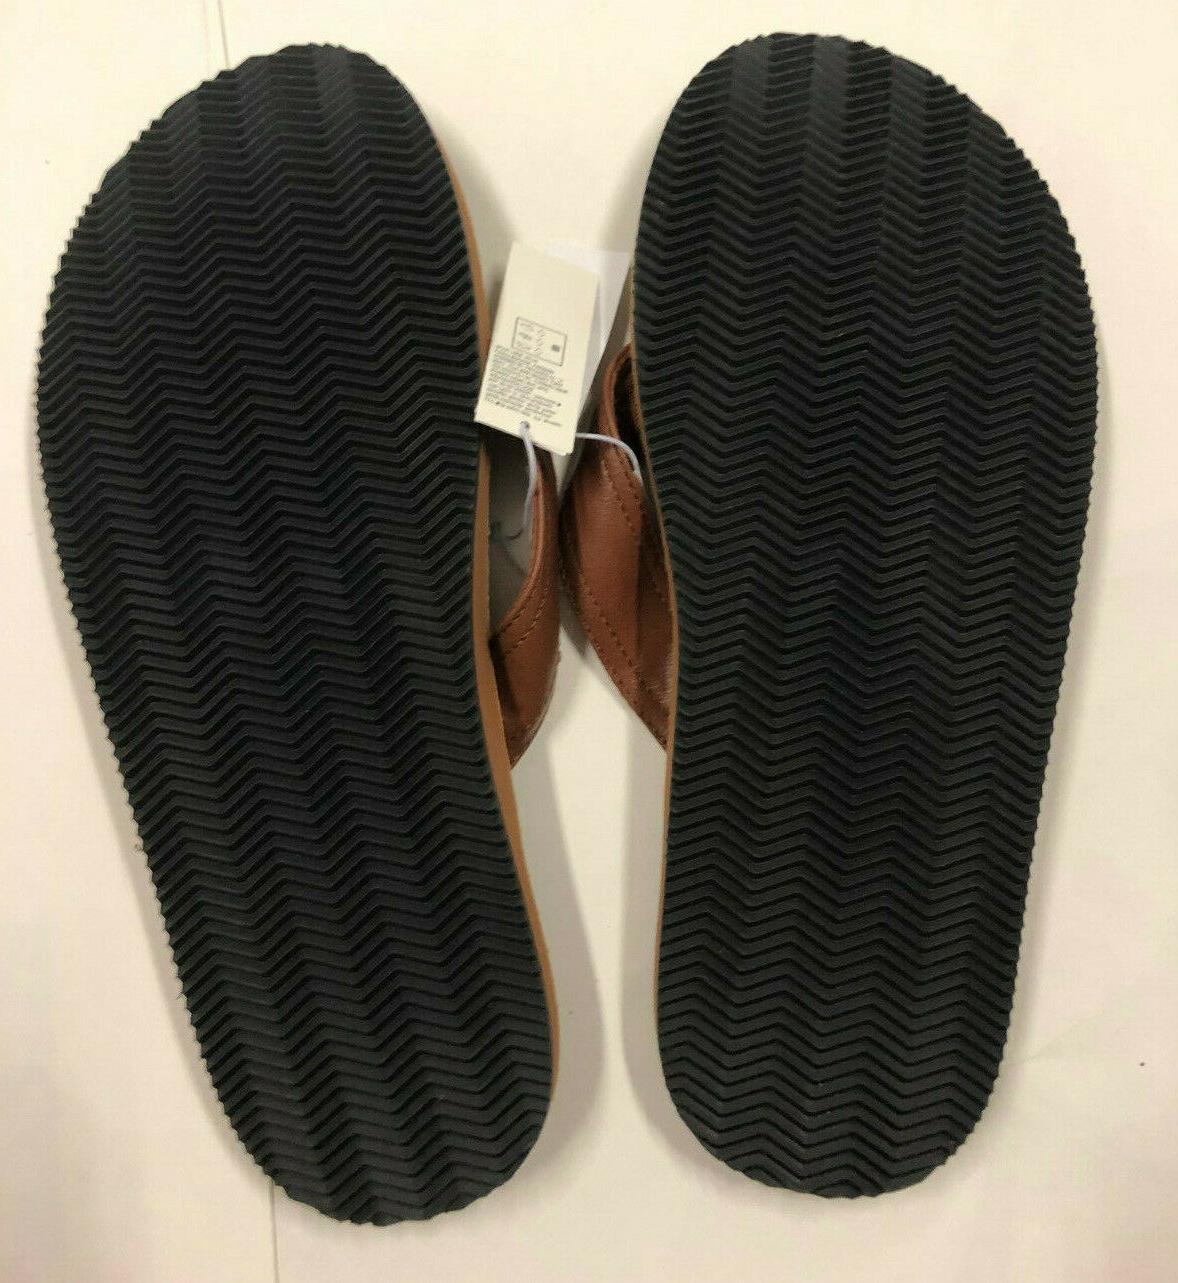 Nwt Brown Leather Flip Flops 6 7